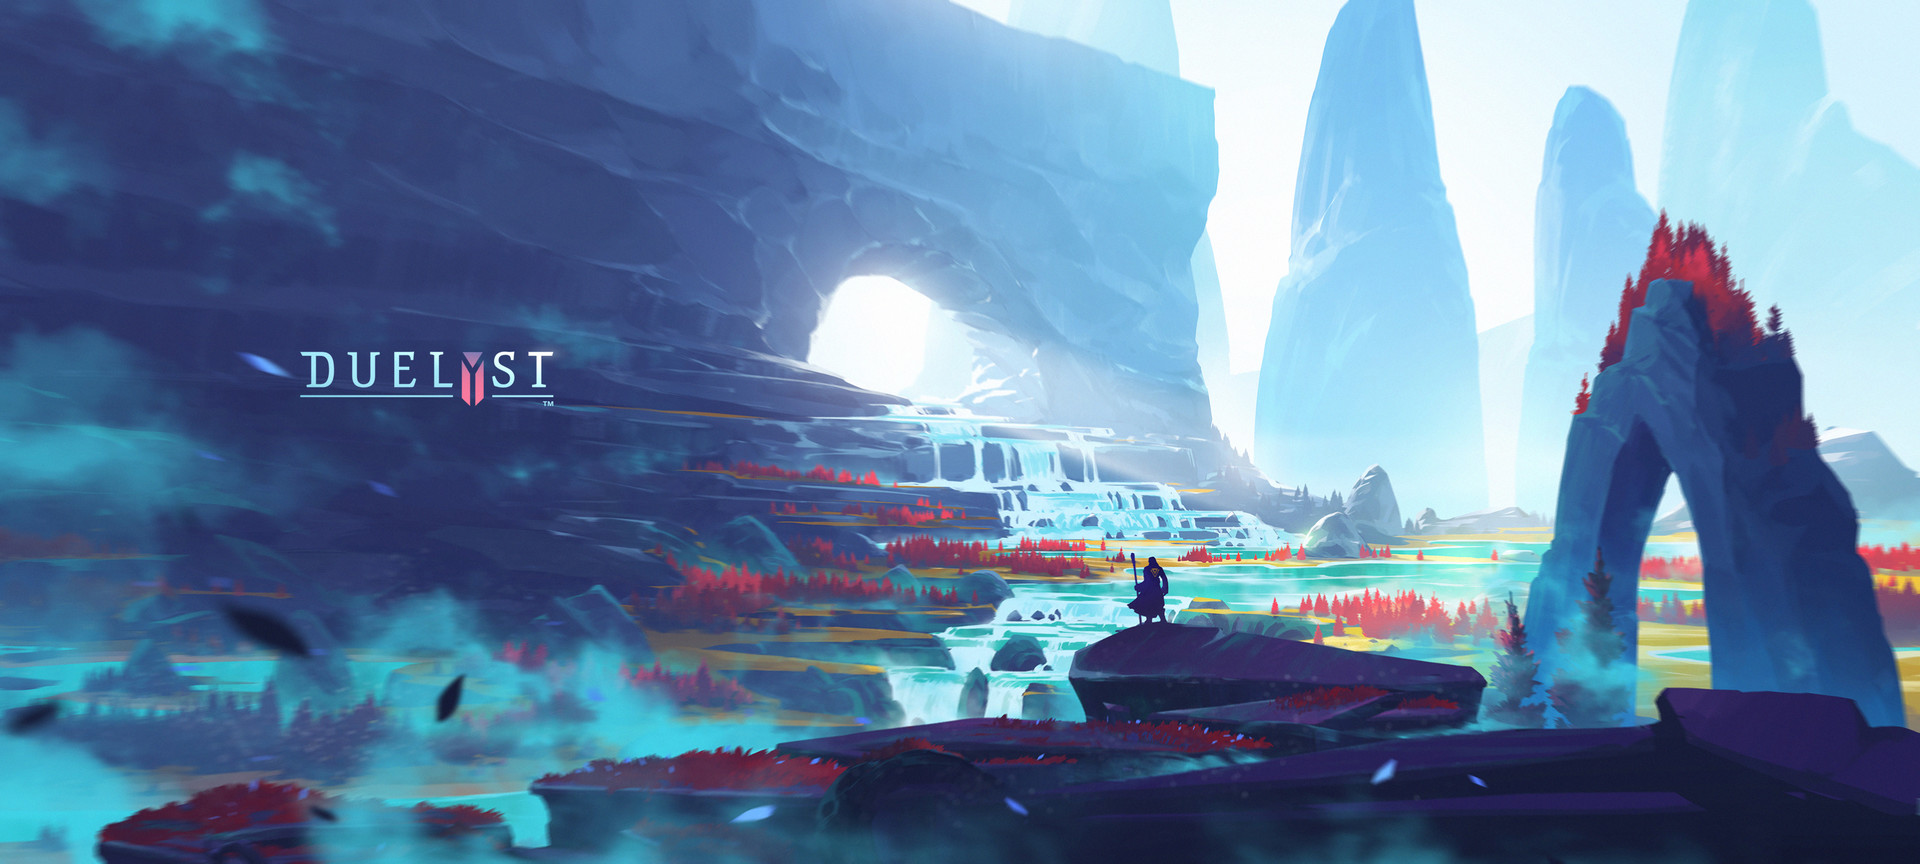 Duelyst_digital_painting_illustration_environment_nature